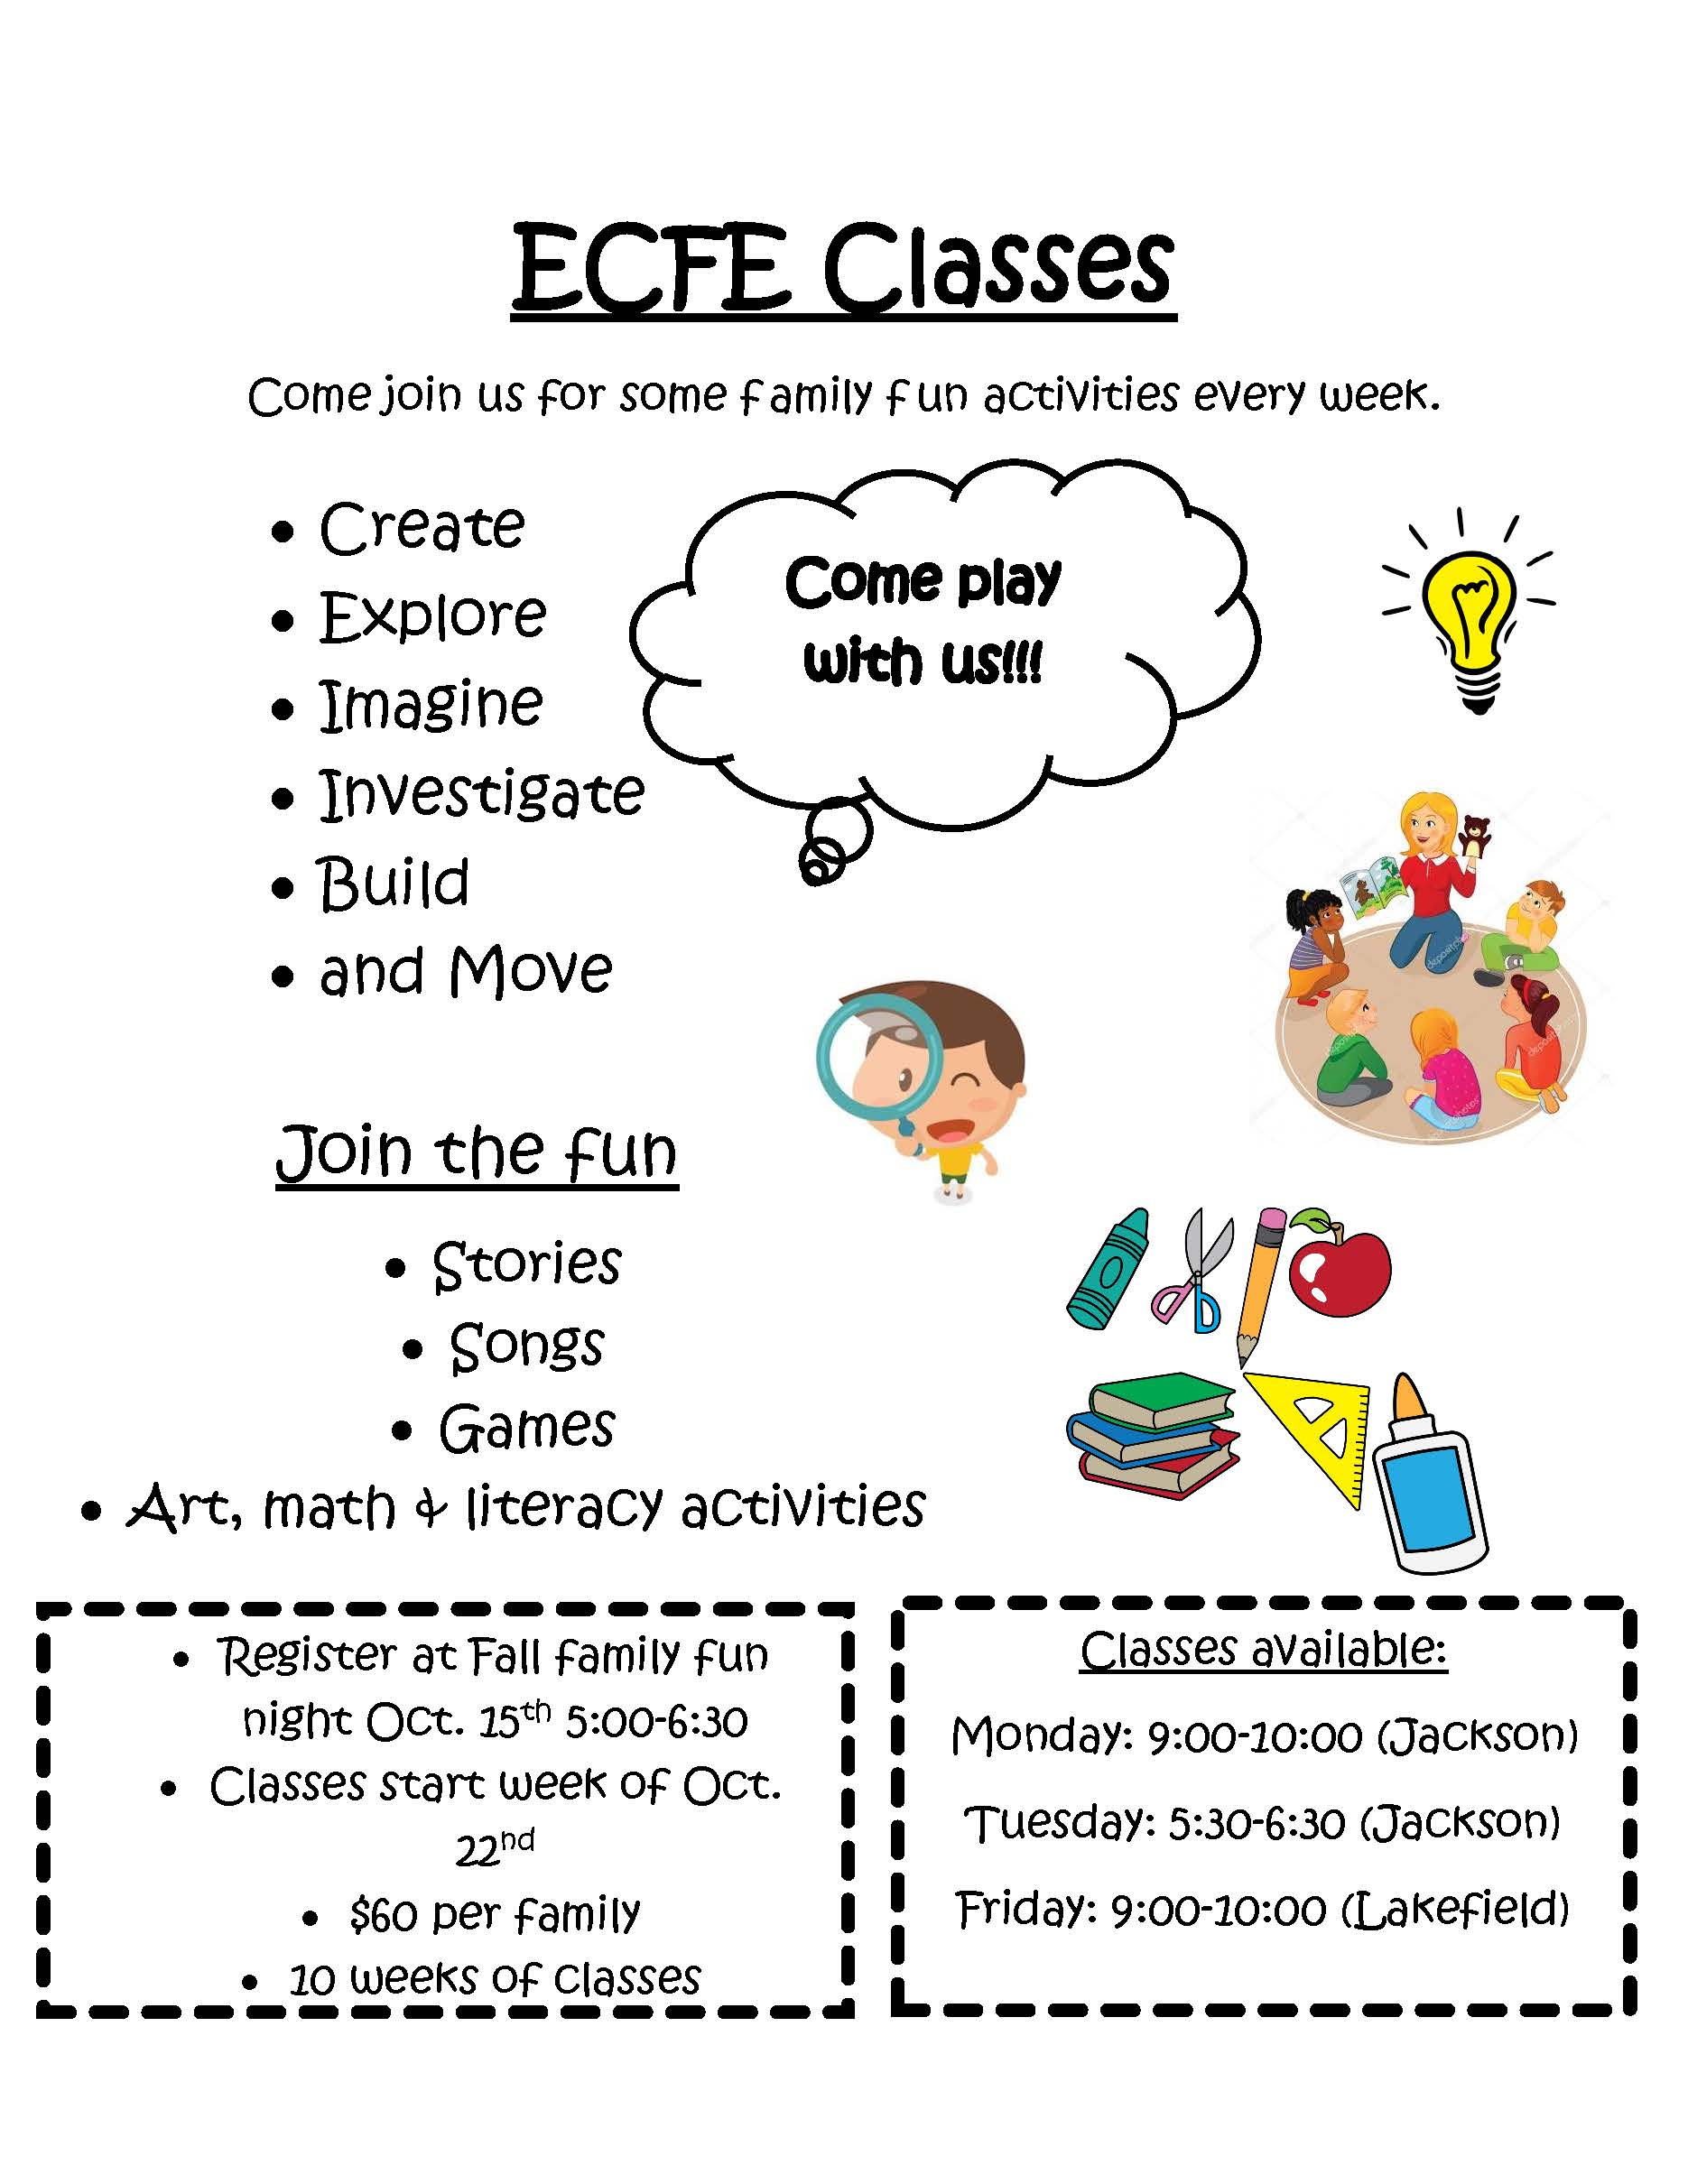 ECFE Classes Flyer Image